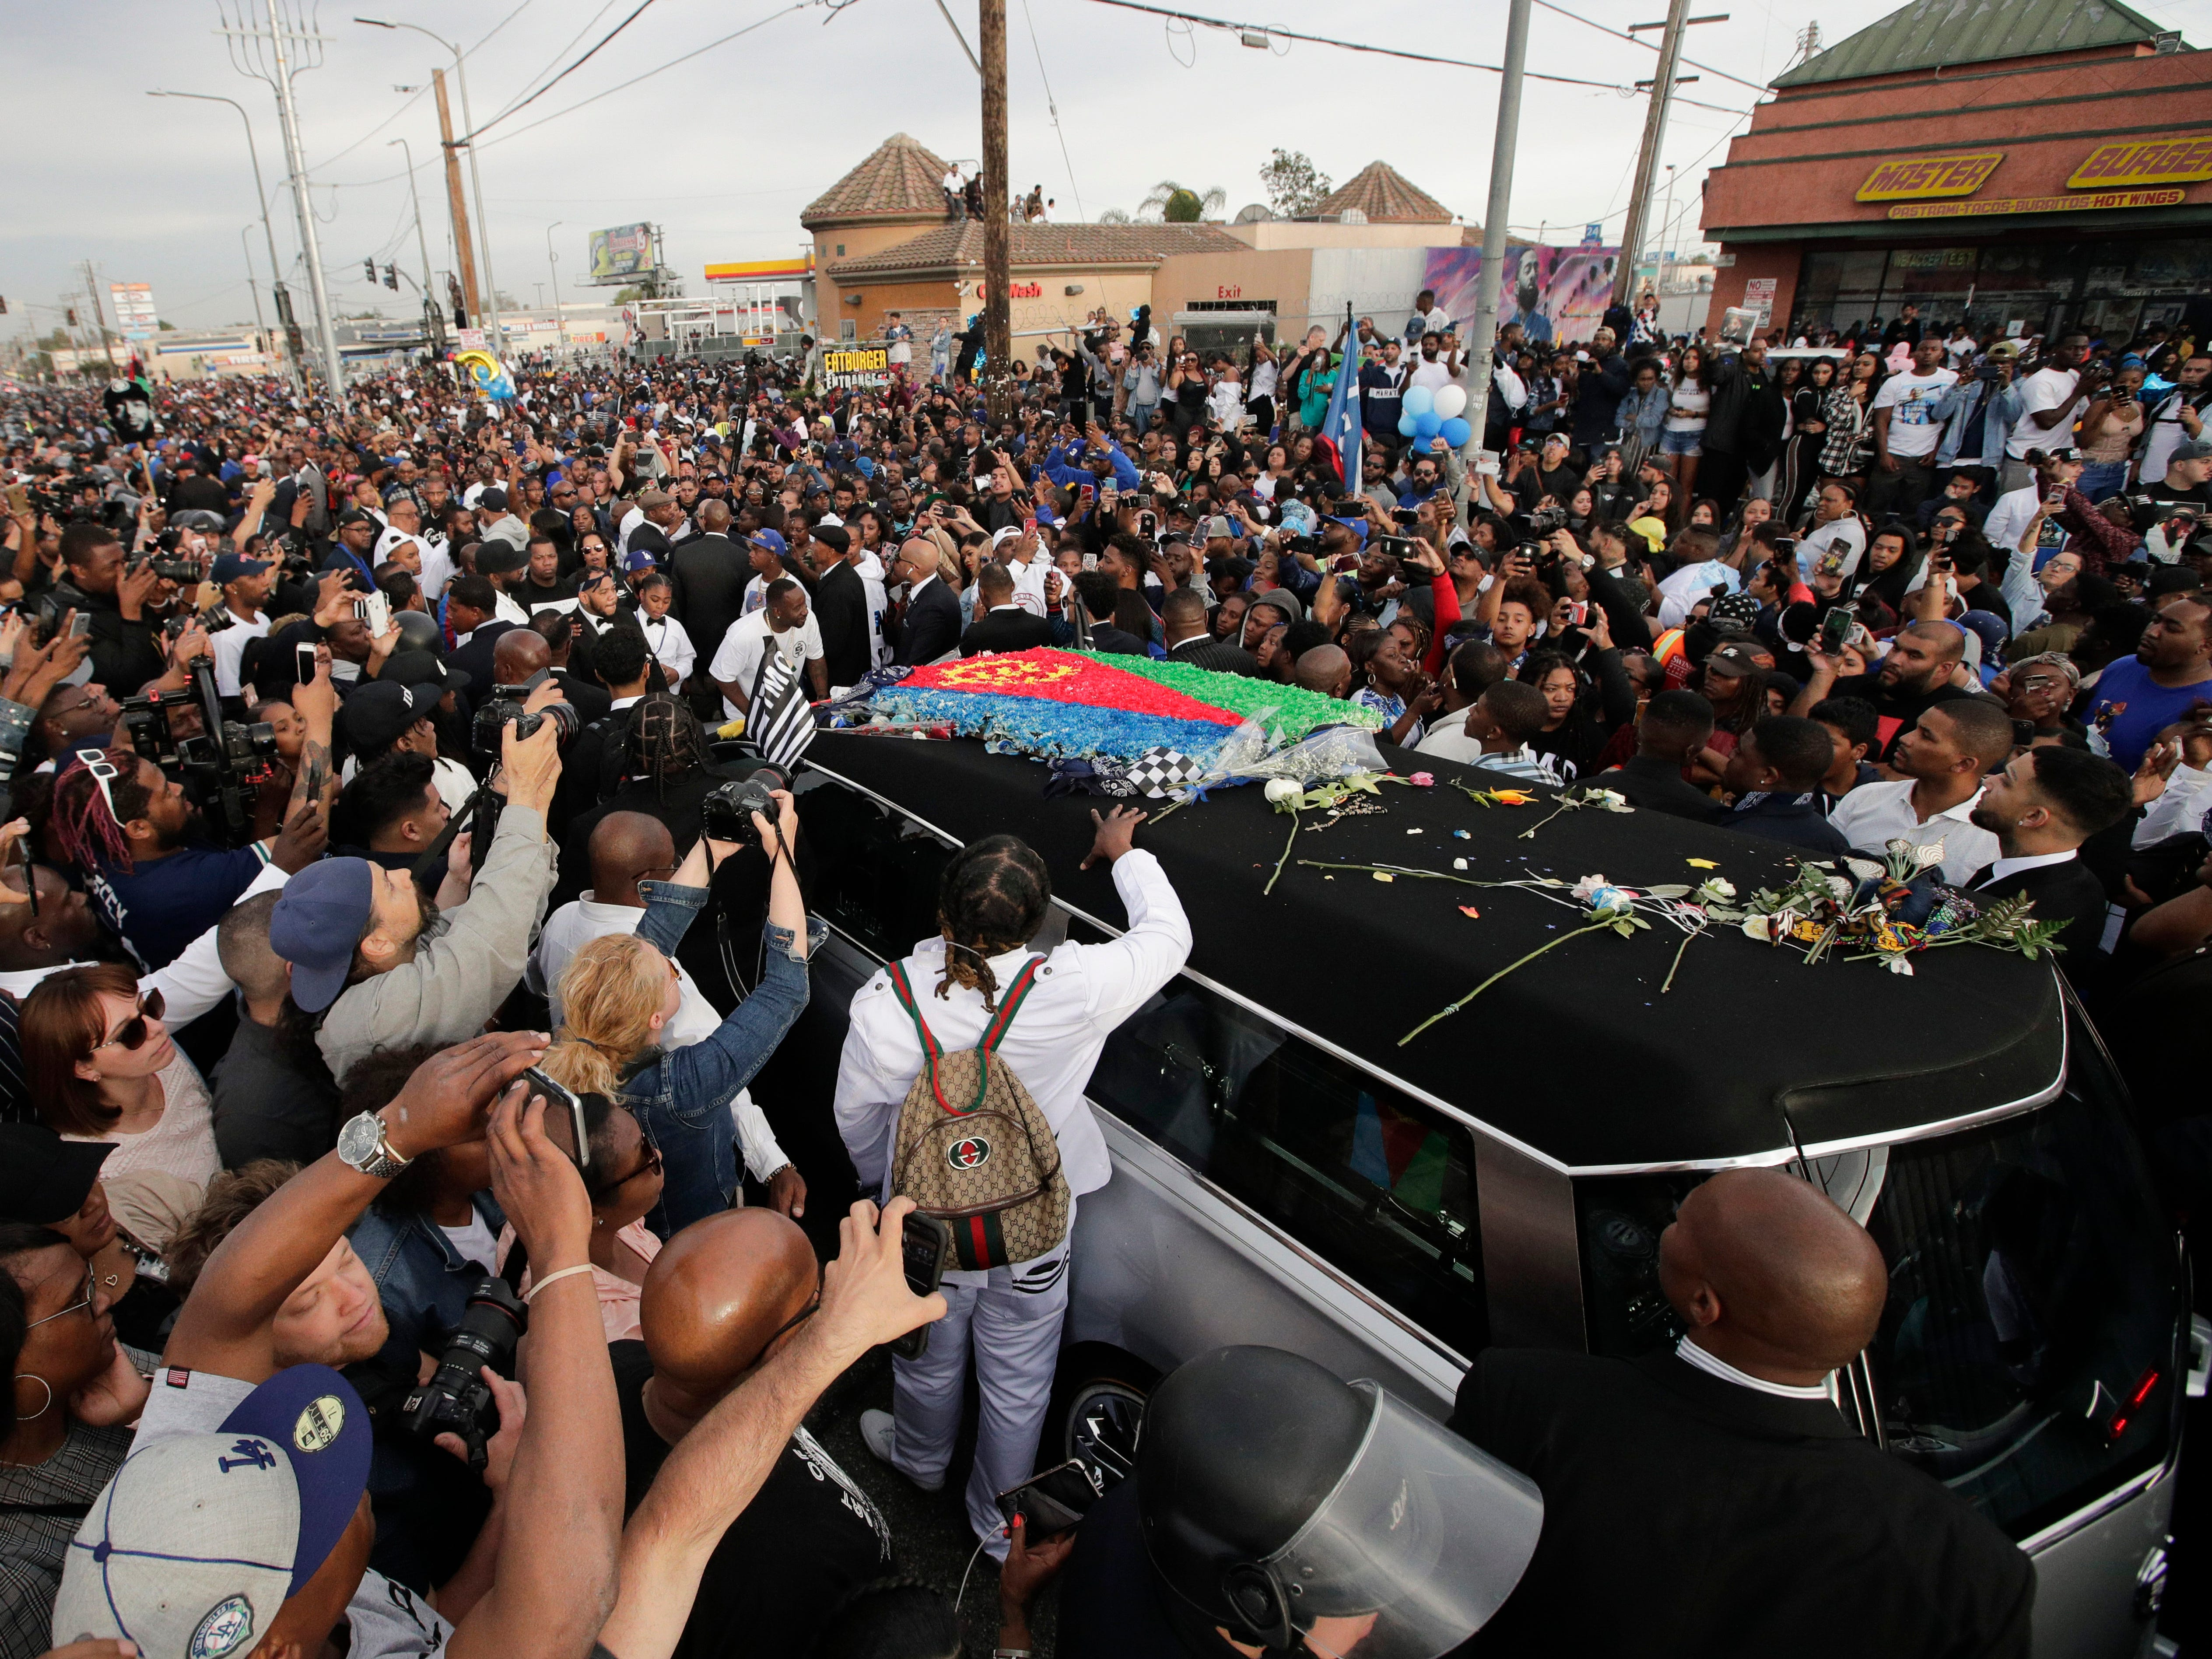 A hearse carrying the casket of slain rapper Nipsey Hussle, draped in the flag of his father's native country, Eritrea in East Africa, passes through the crowd Thursday, April 11, 2019, in Los Angeles. Hussle was shot to death March 31 while standing outside The Marathon, his South Los Angeles clothing store, not far from where the rapper grew up.